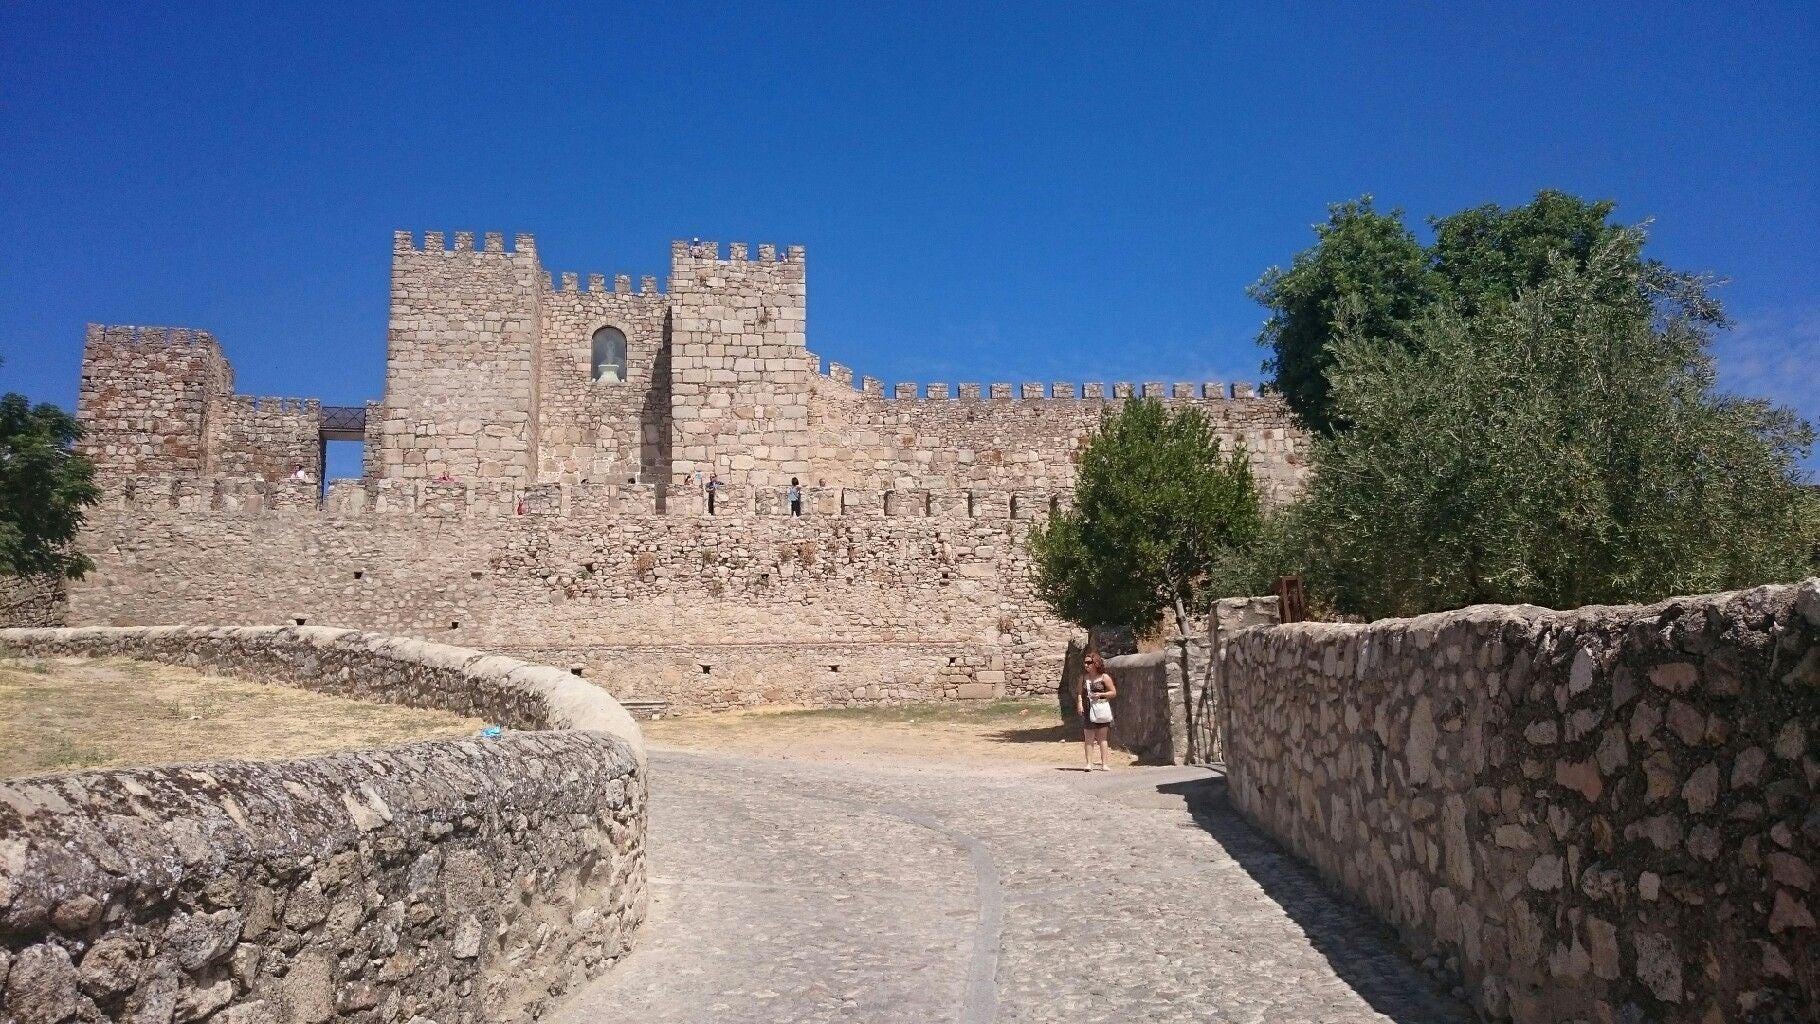 Pared en Castillo de Trujillo